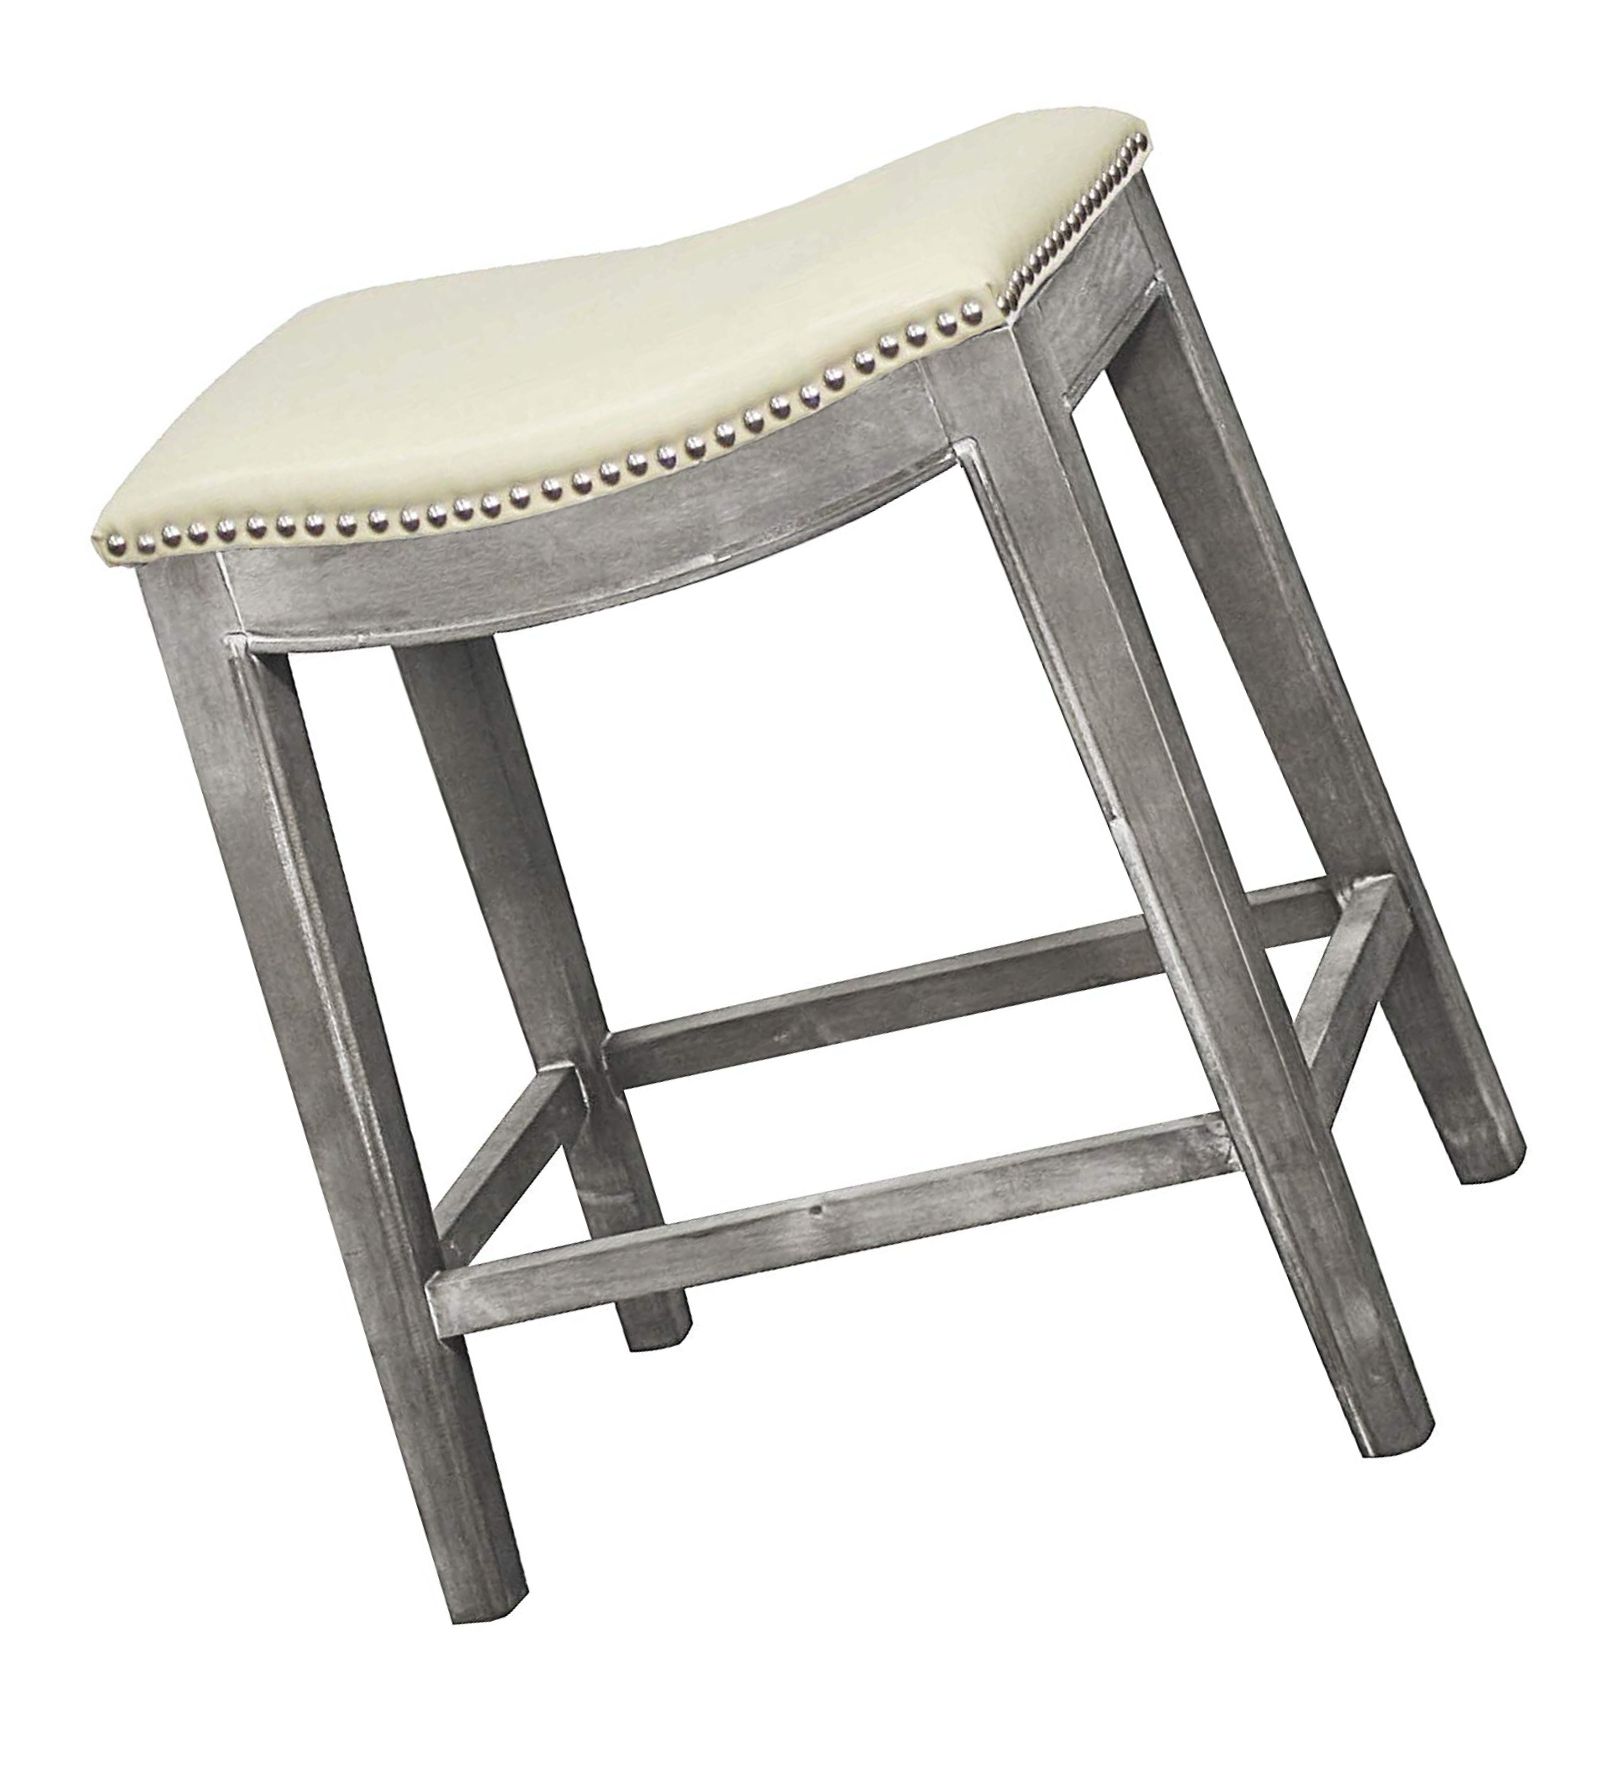 Details About New Pacific Direct 198625b 2050 Elmo Bonded Leather Counter Stool Furniture Bei